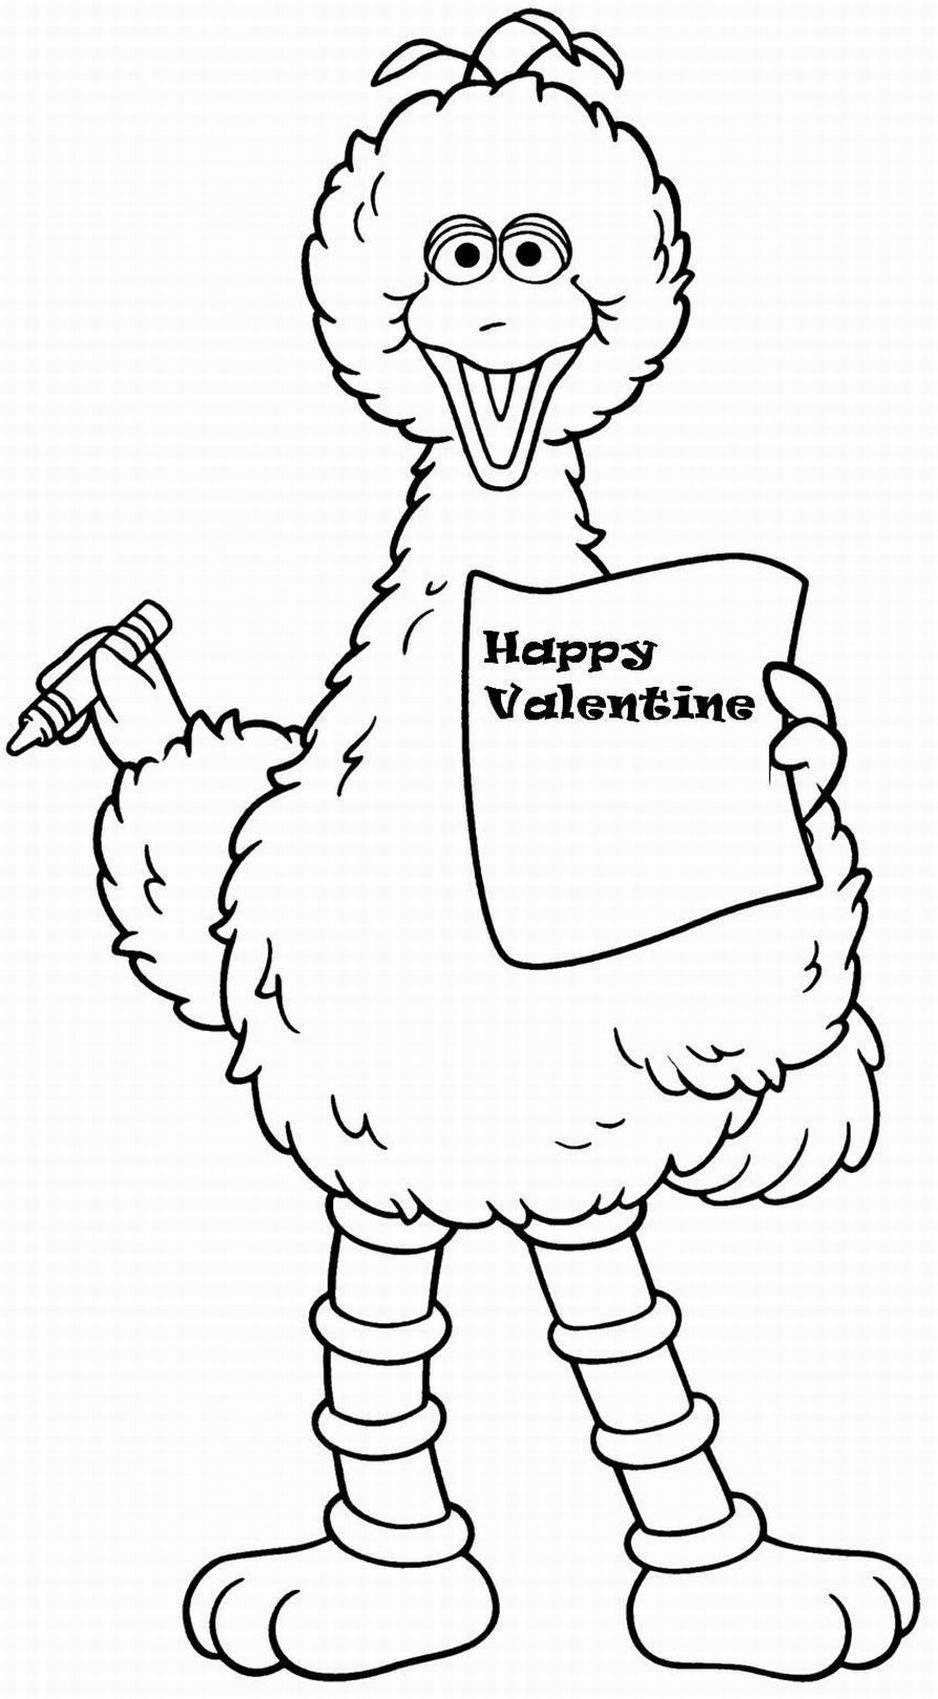 sesame-street-printable-coloring-pages-valentine | Things for my ...